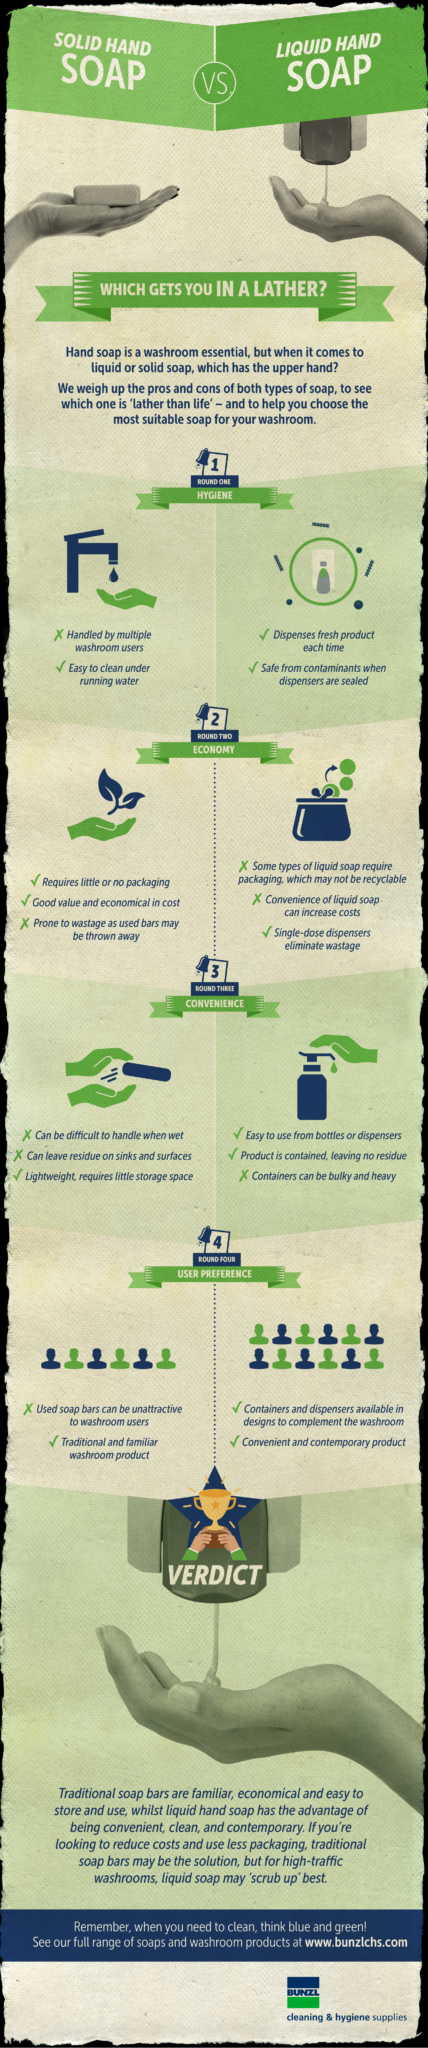 Infographic showing the advantages and disadvantages of liquid hand soap and solid bar soap